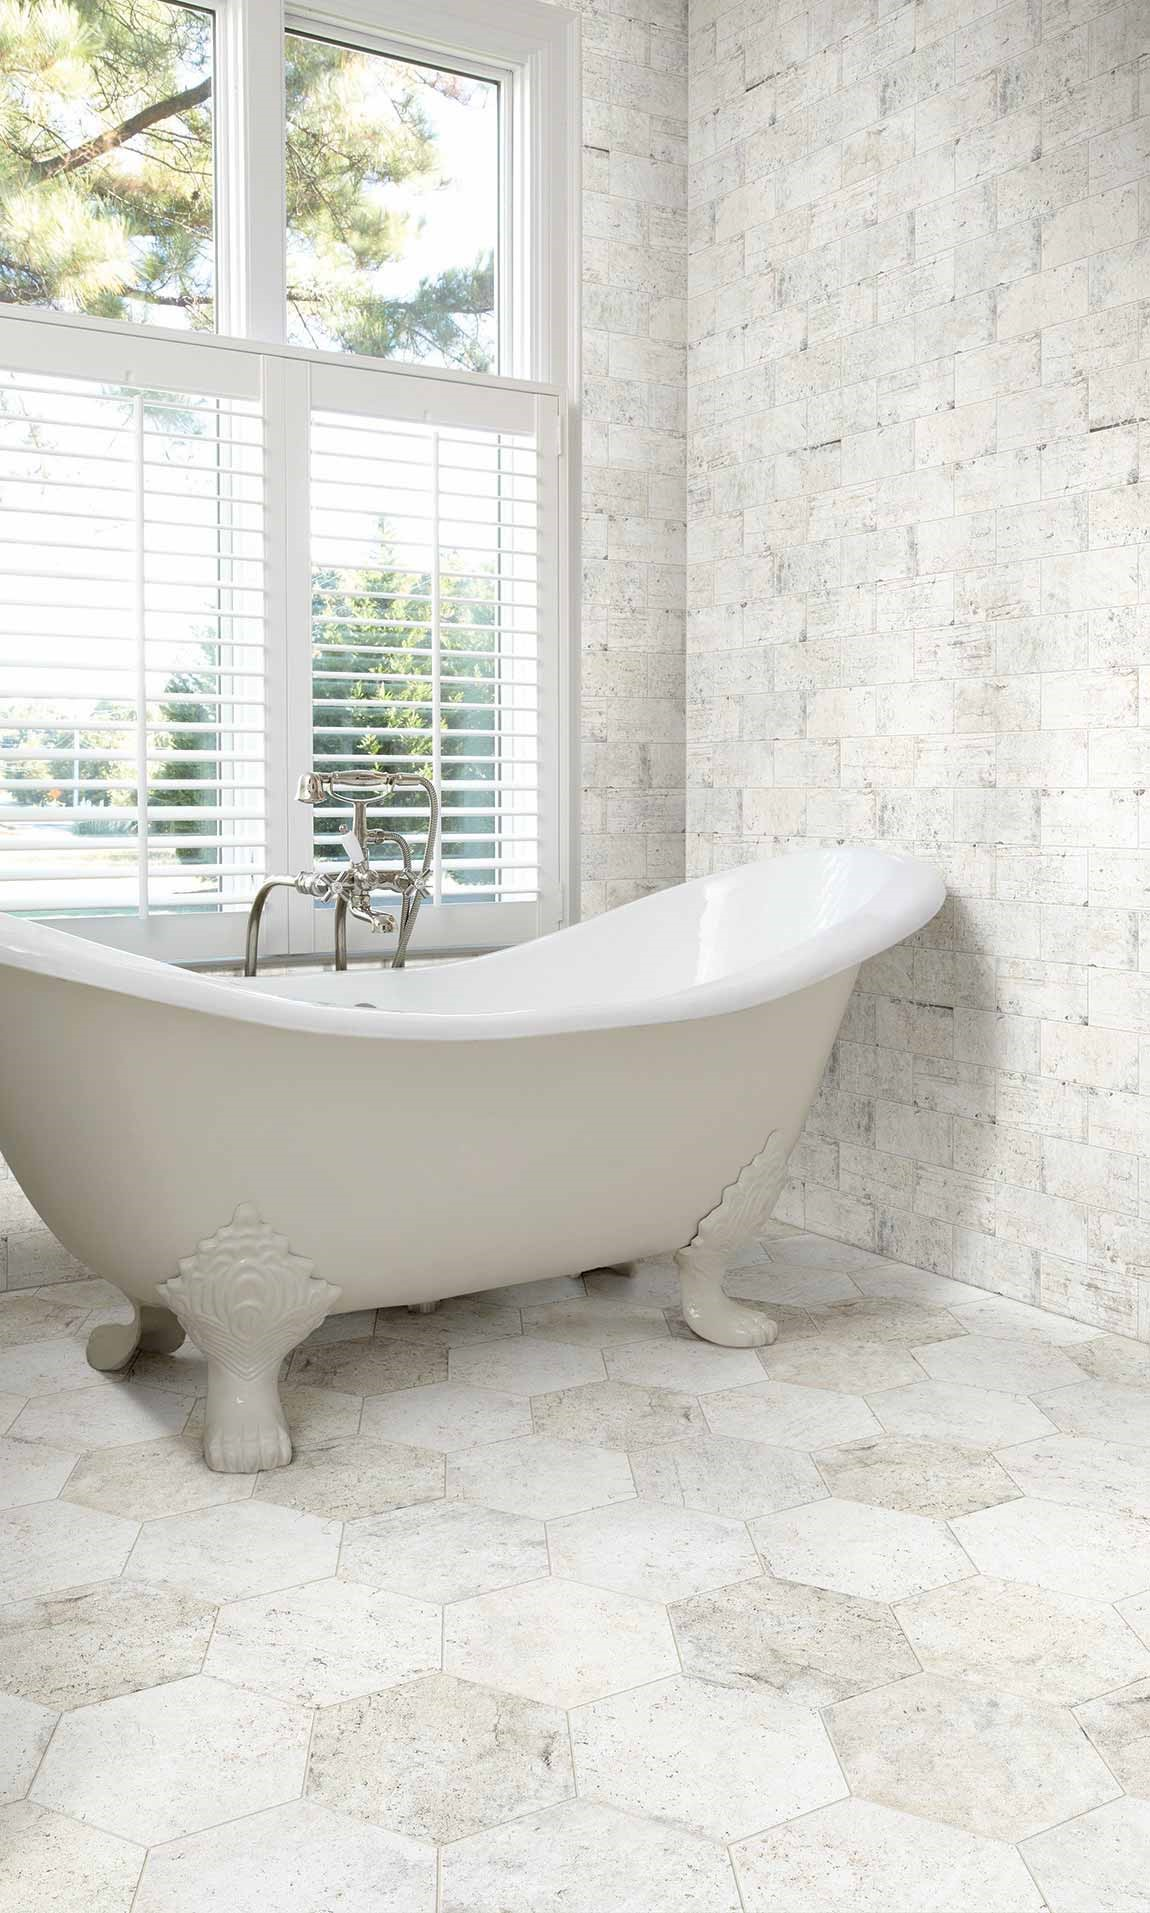 reestanding bathtub in light colored bathroom with ceramic tile